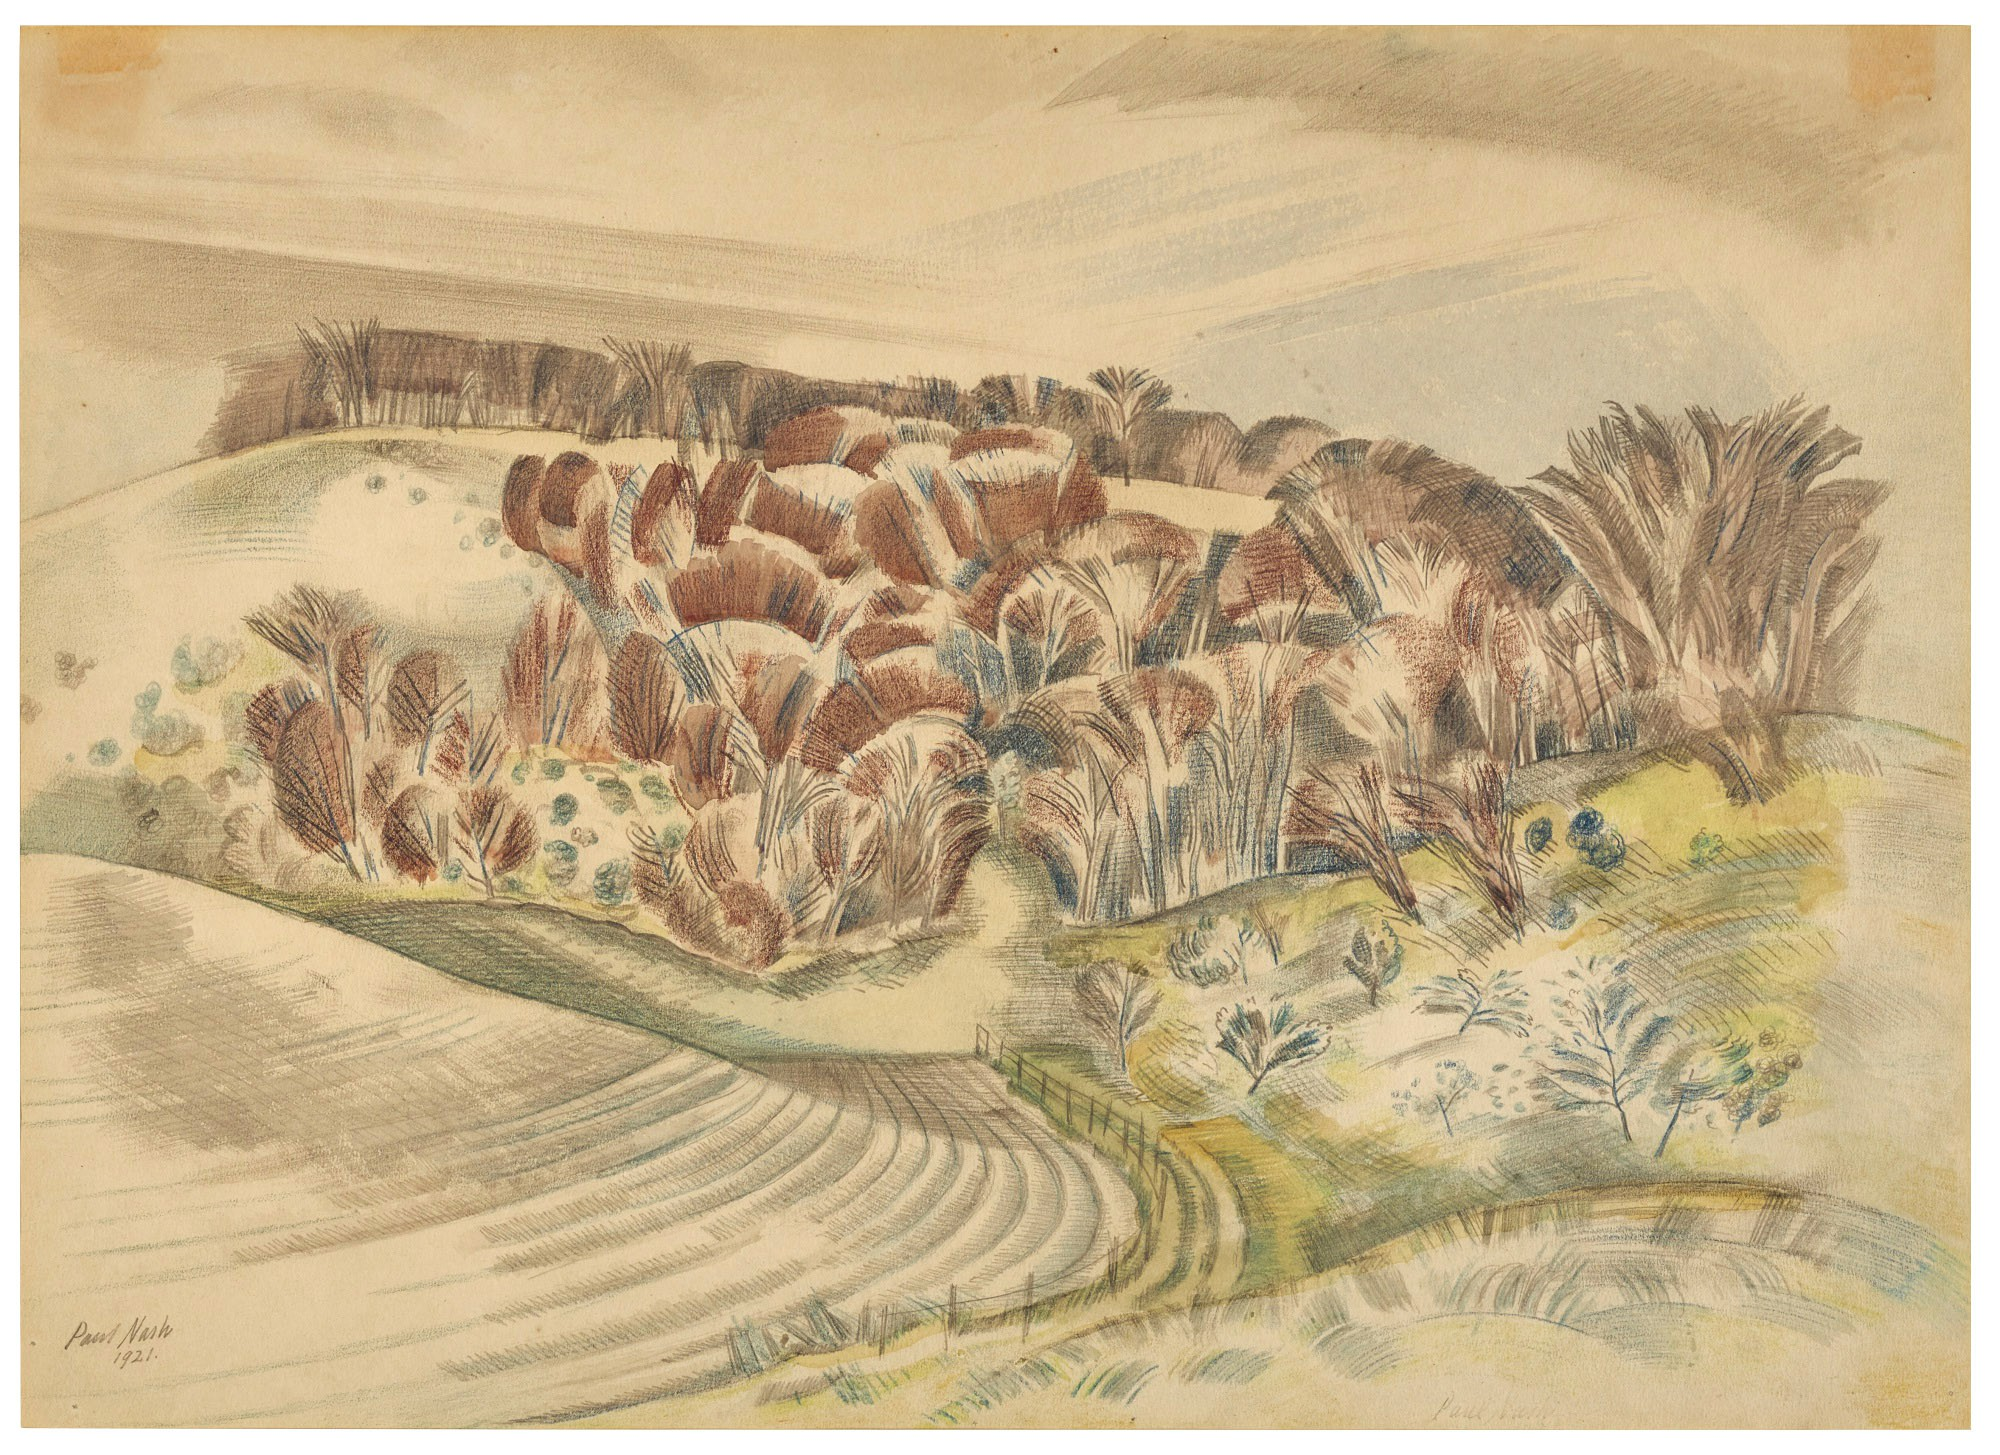 PAUL NASH | THE VALLEY